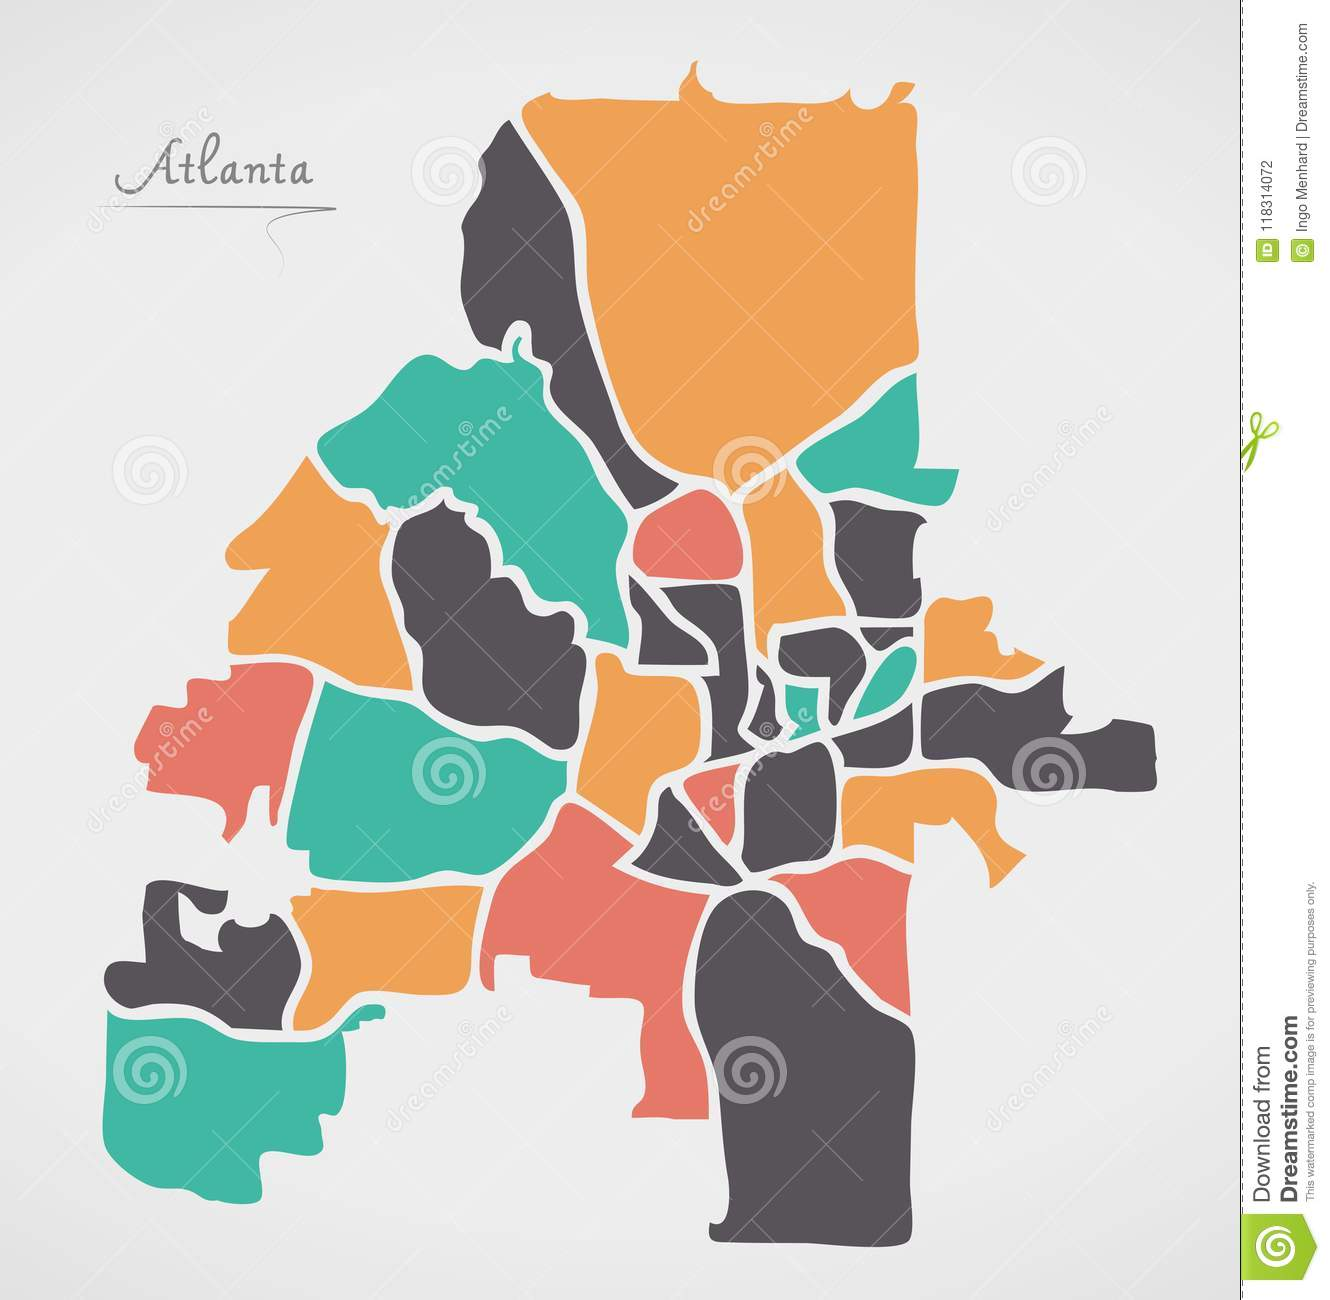 Atlanta Georgia Map With Neighborhoods And Modern Round Shapes Stock ...